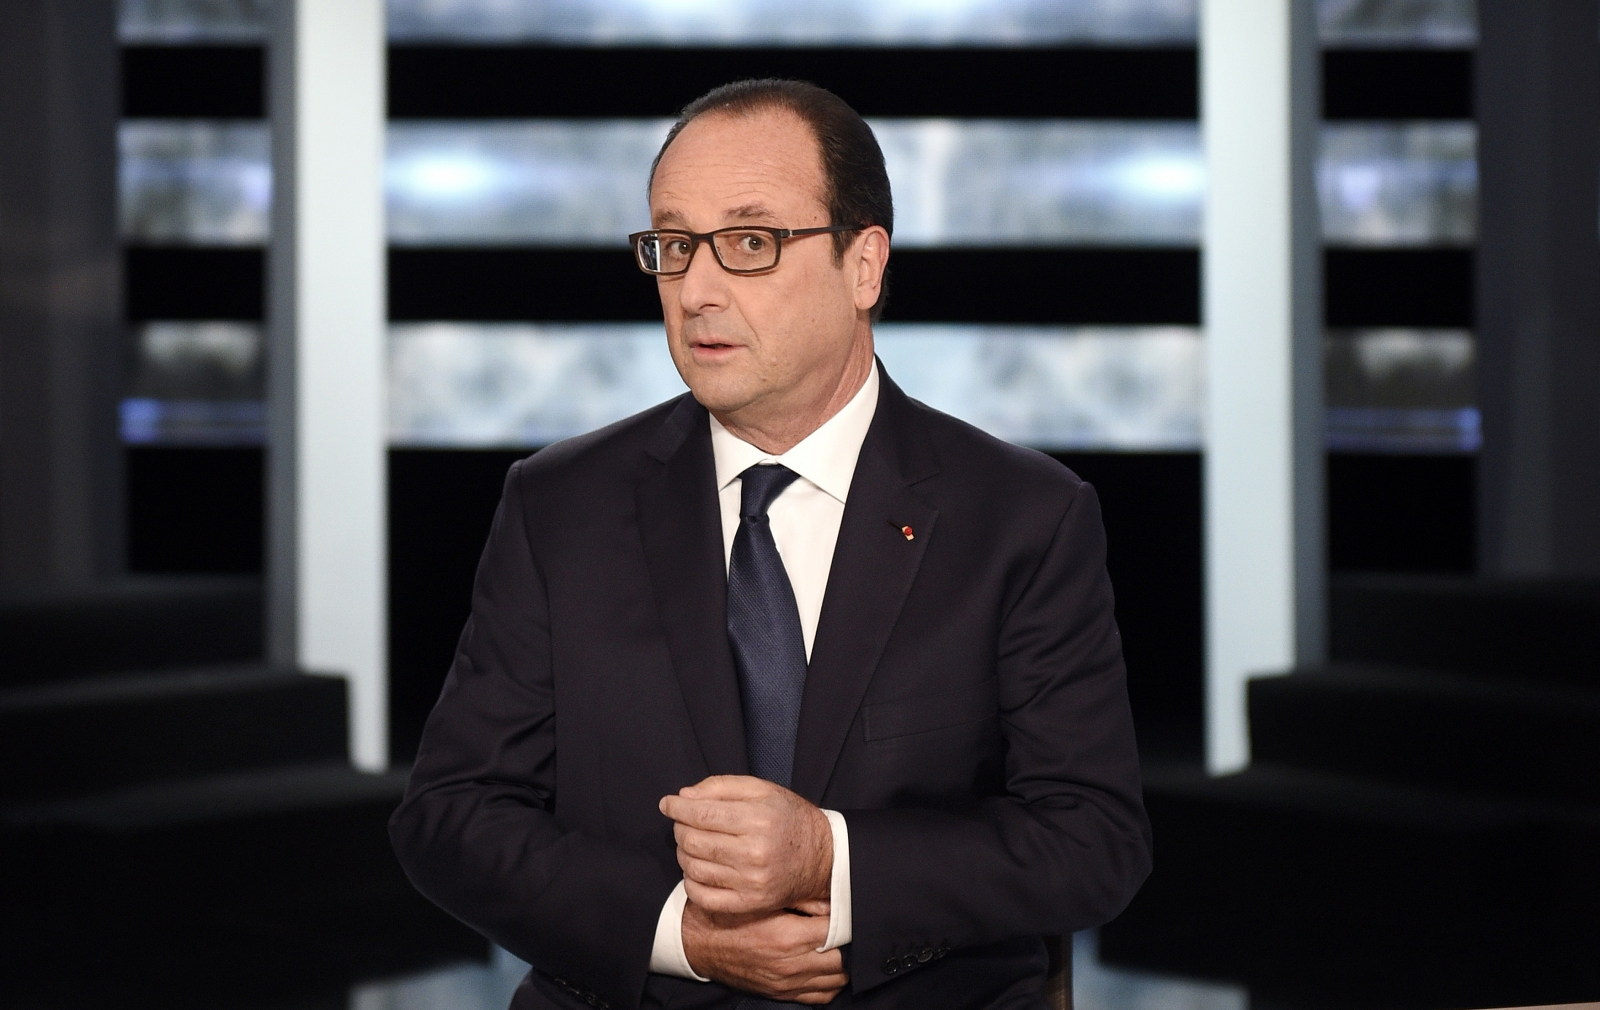 France's President Francois Hollande poses before appearing on TF1 television prime time news live broadcast at their studios in Aubervilliers, near Paris, November 6, 2014